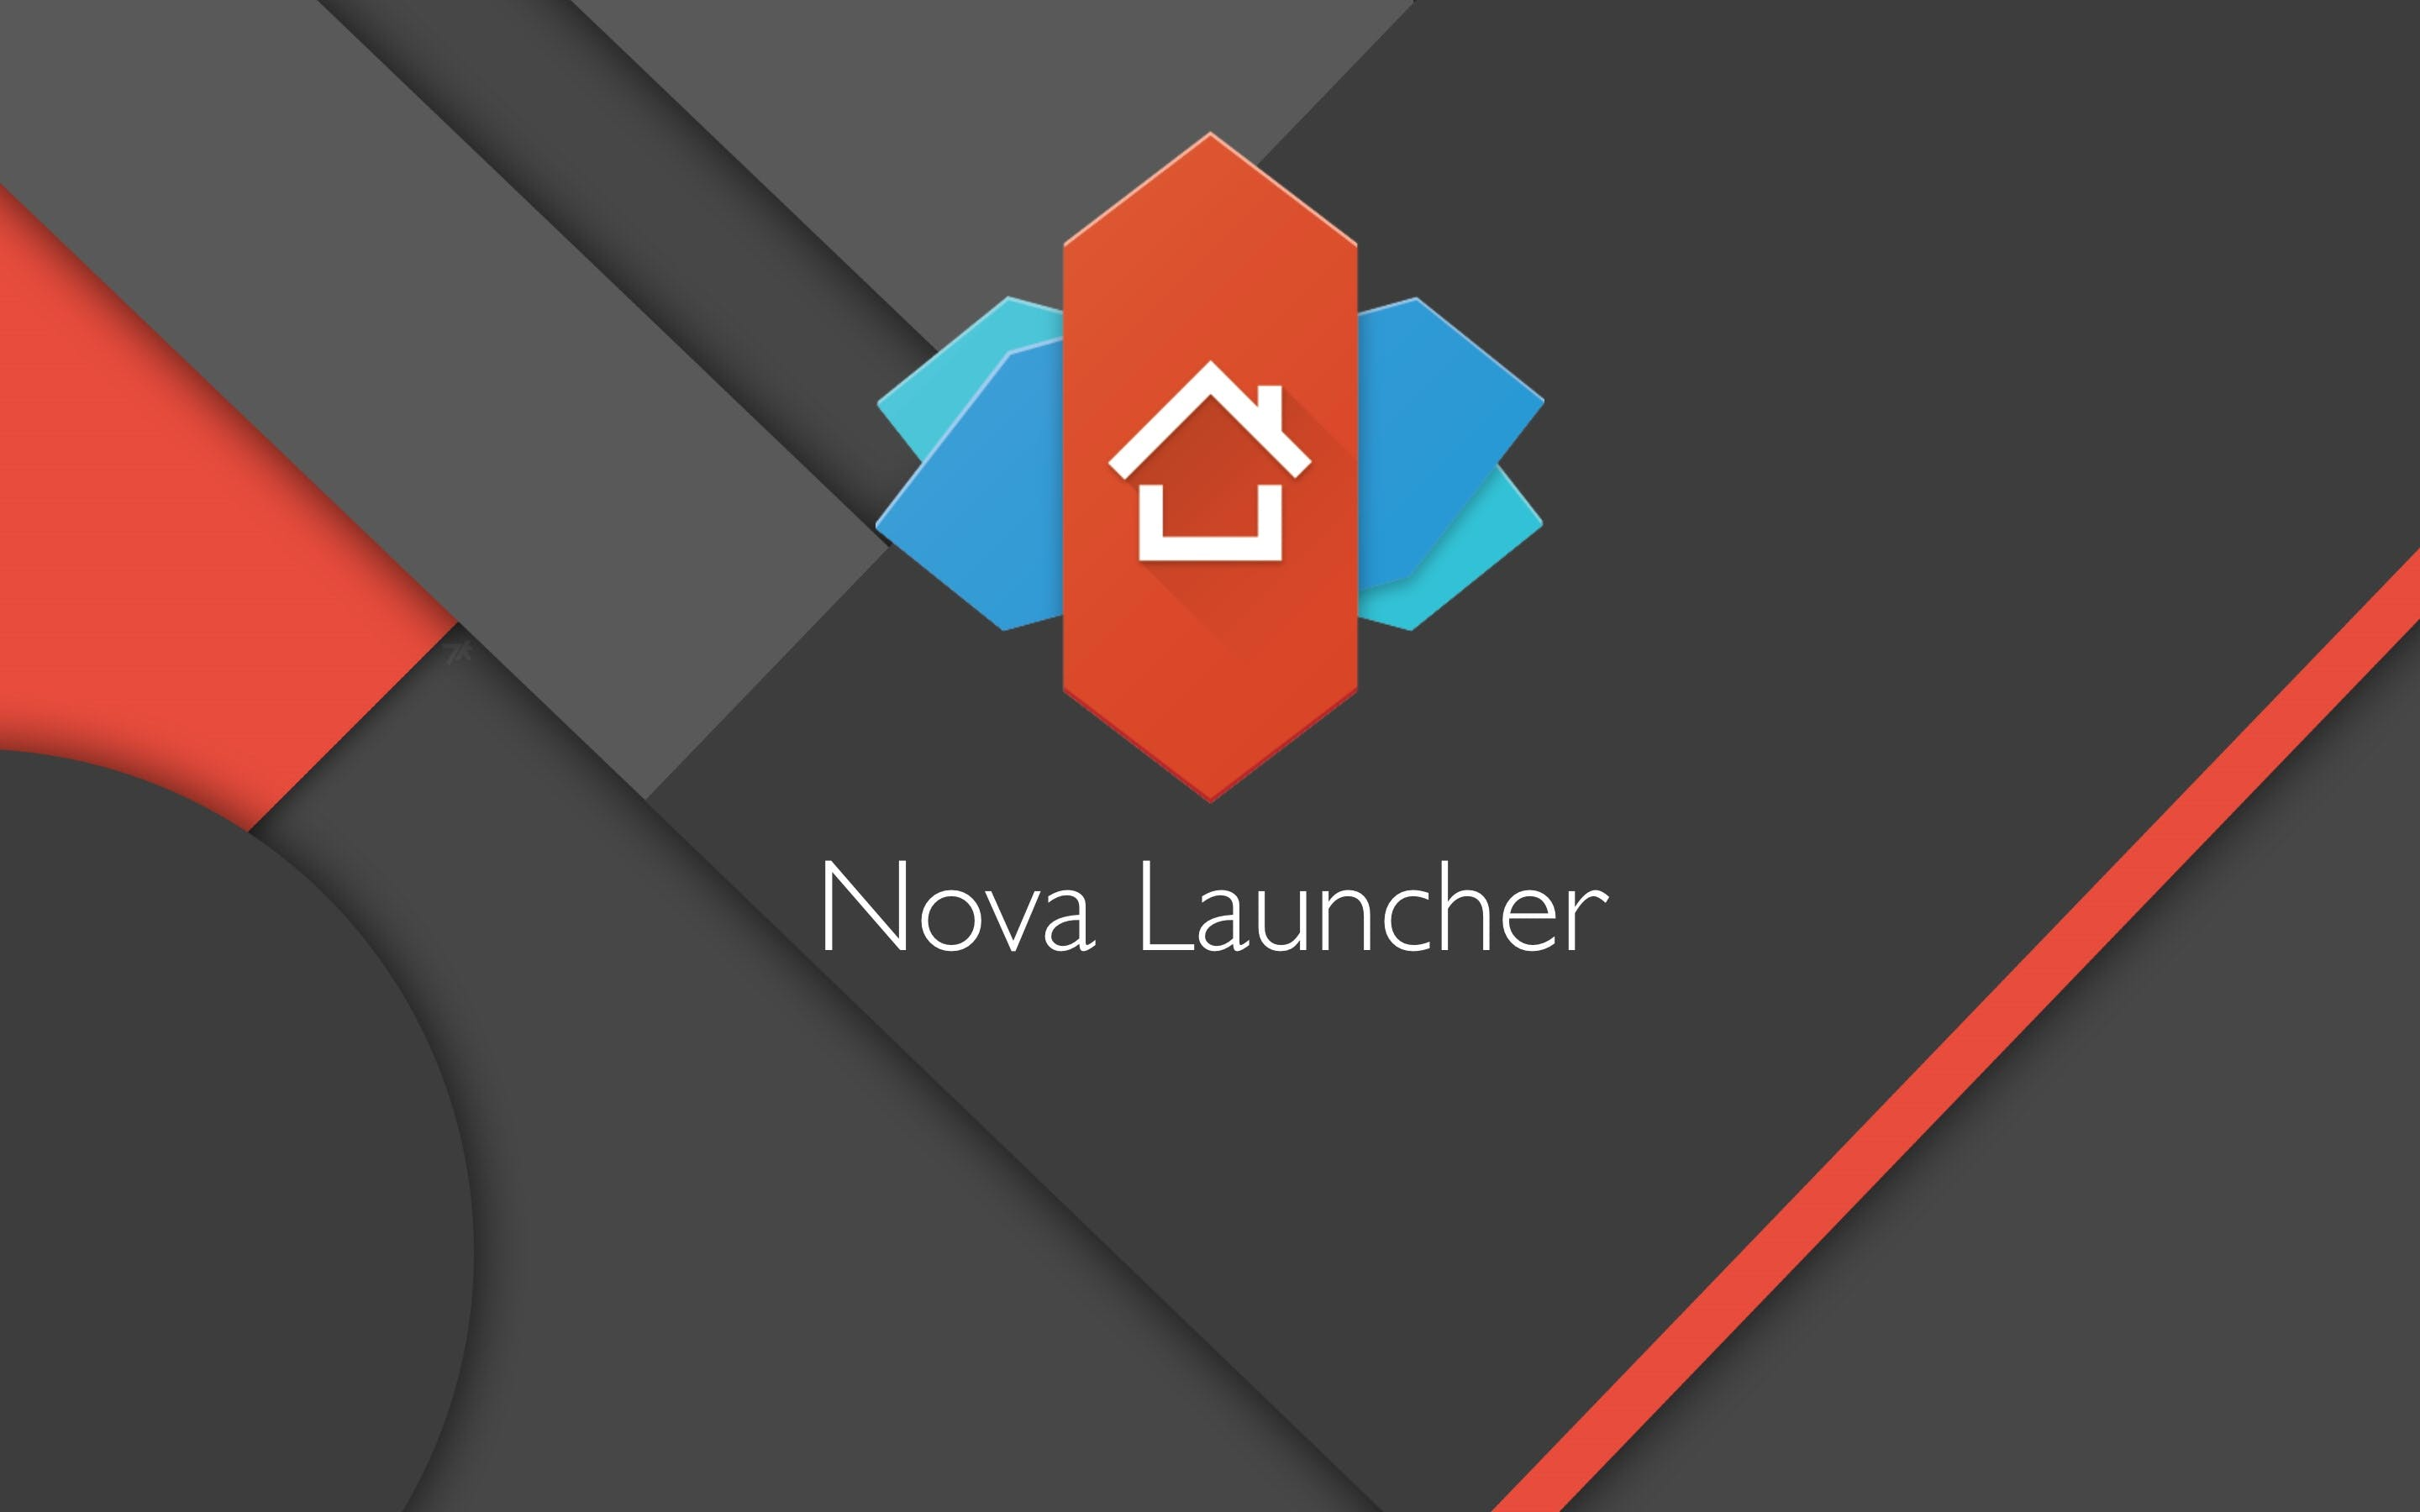 google play, nova launcher 的 免费素材照片